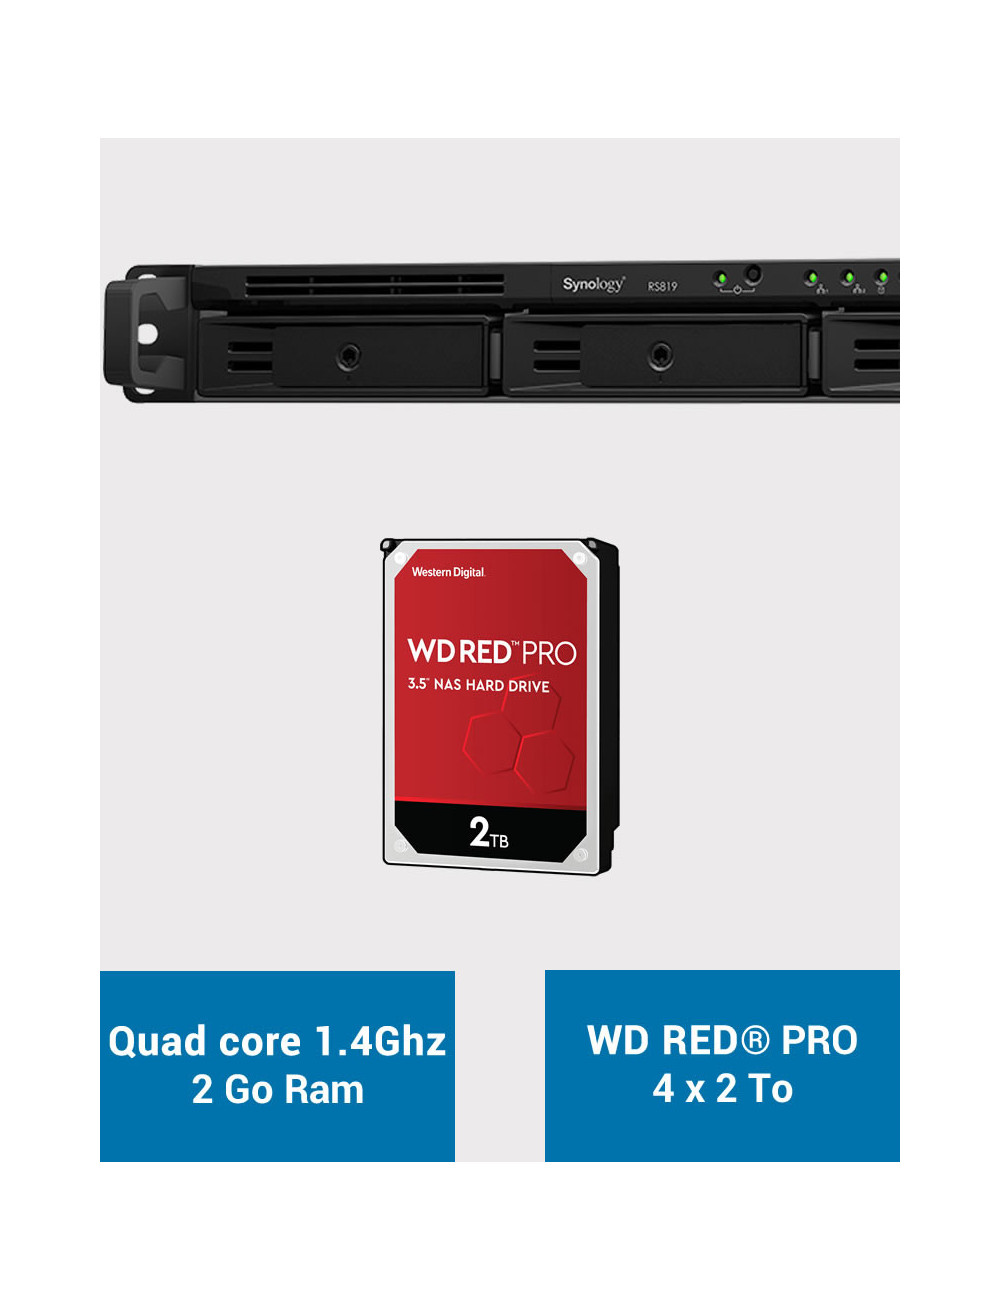 Synology RS819 Serveur NAS WD RED PRO 8To (4x2To)